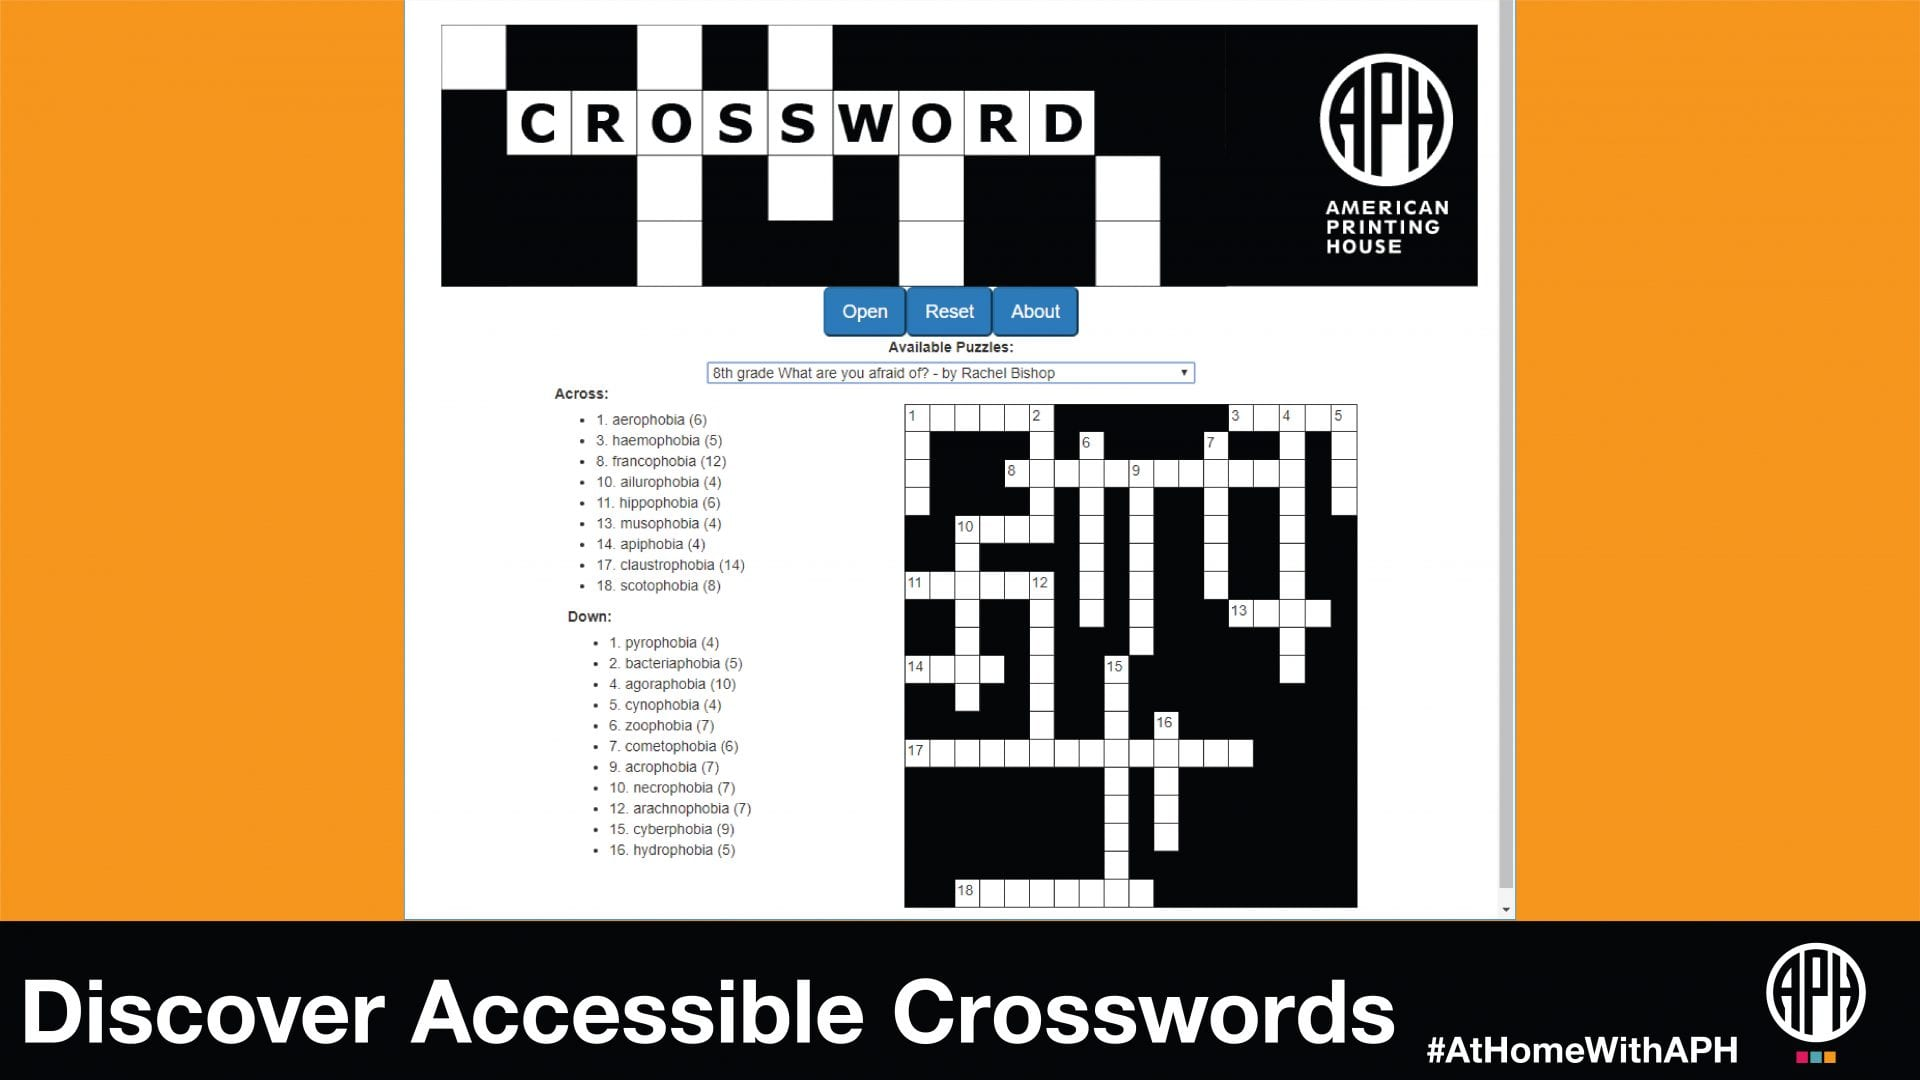 a screenshot of the APH crossword web app